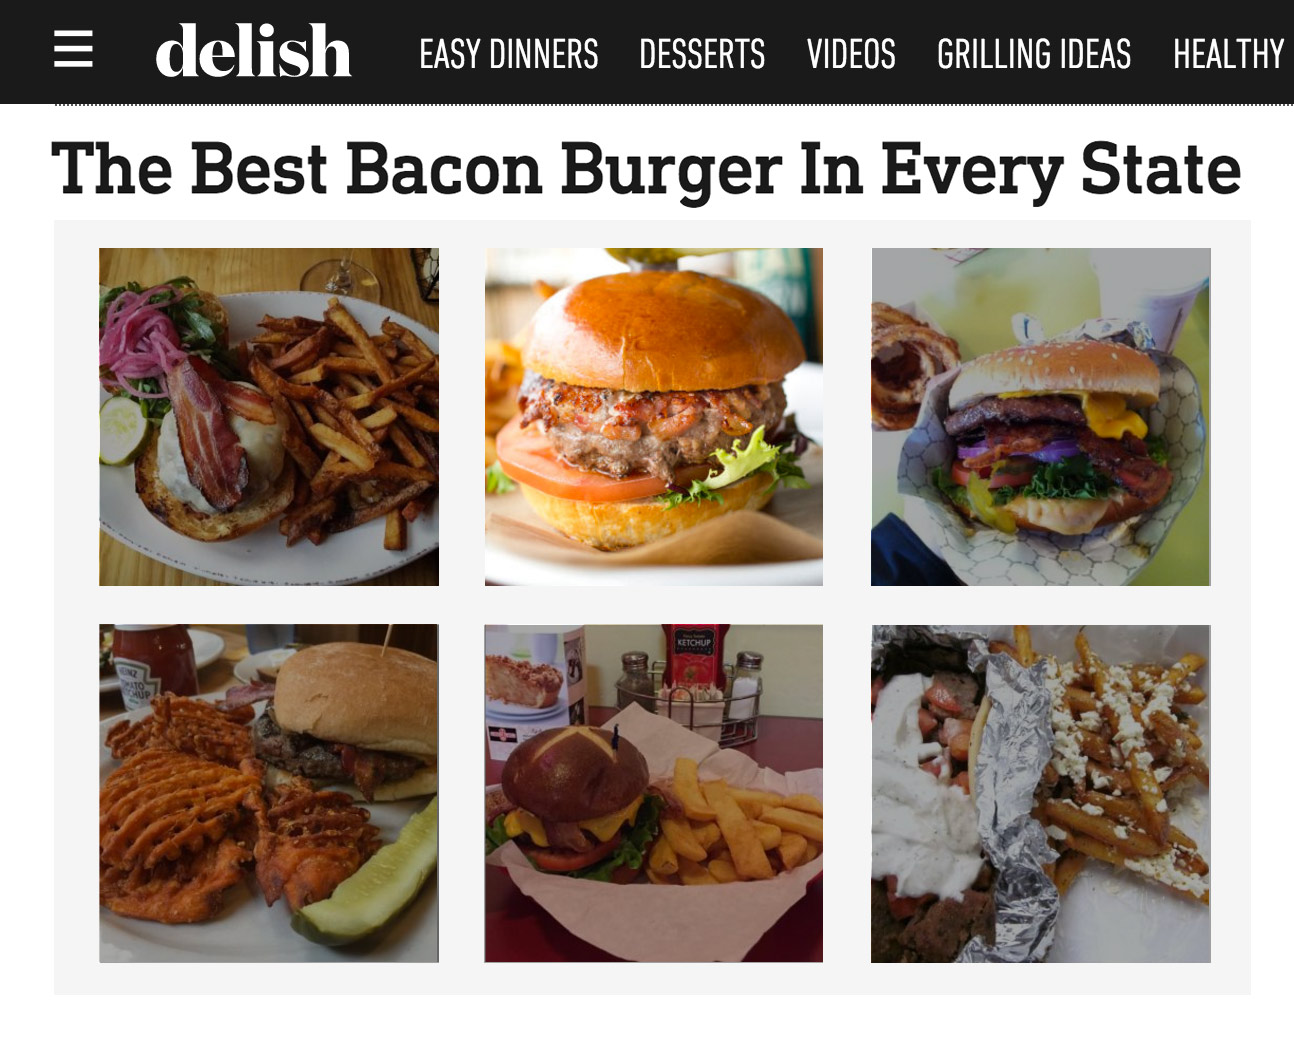 Delish.com - Best Bacon Burger in Every State